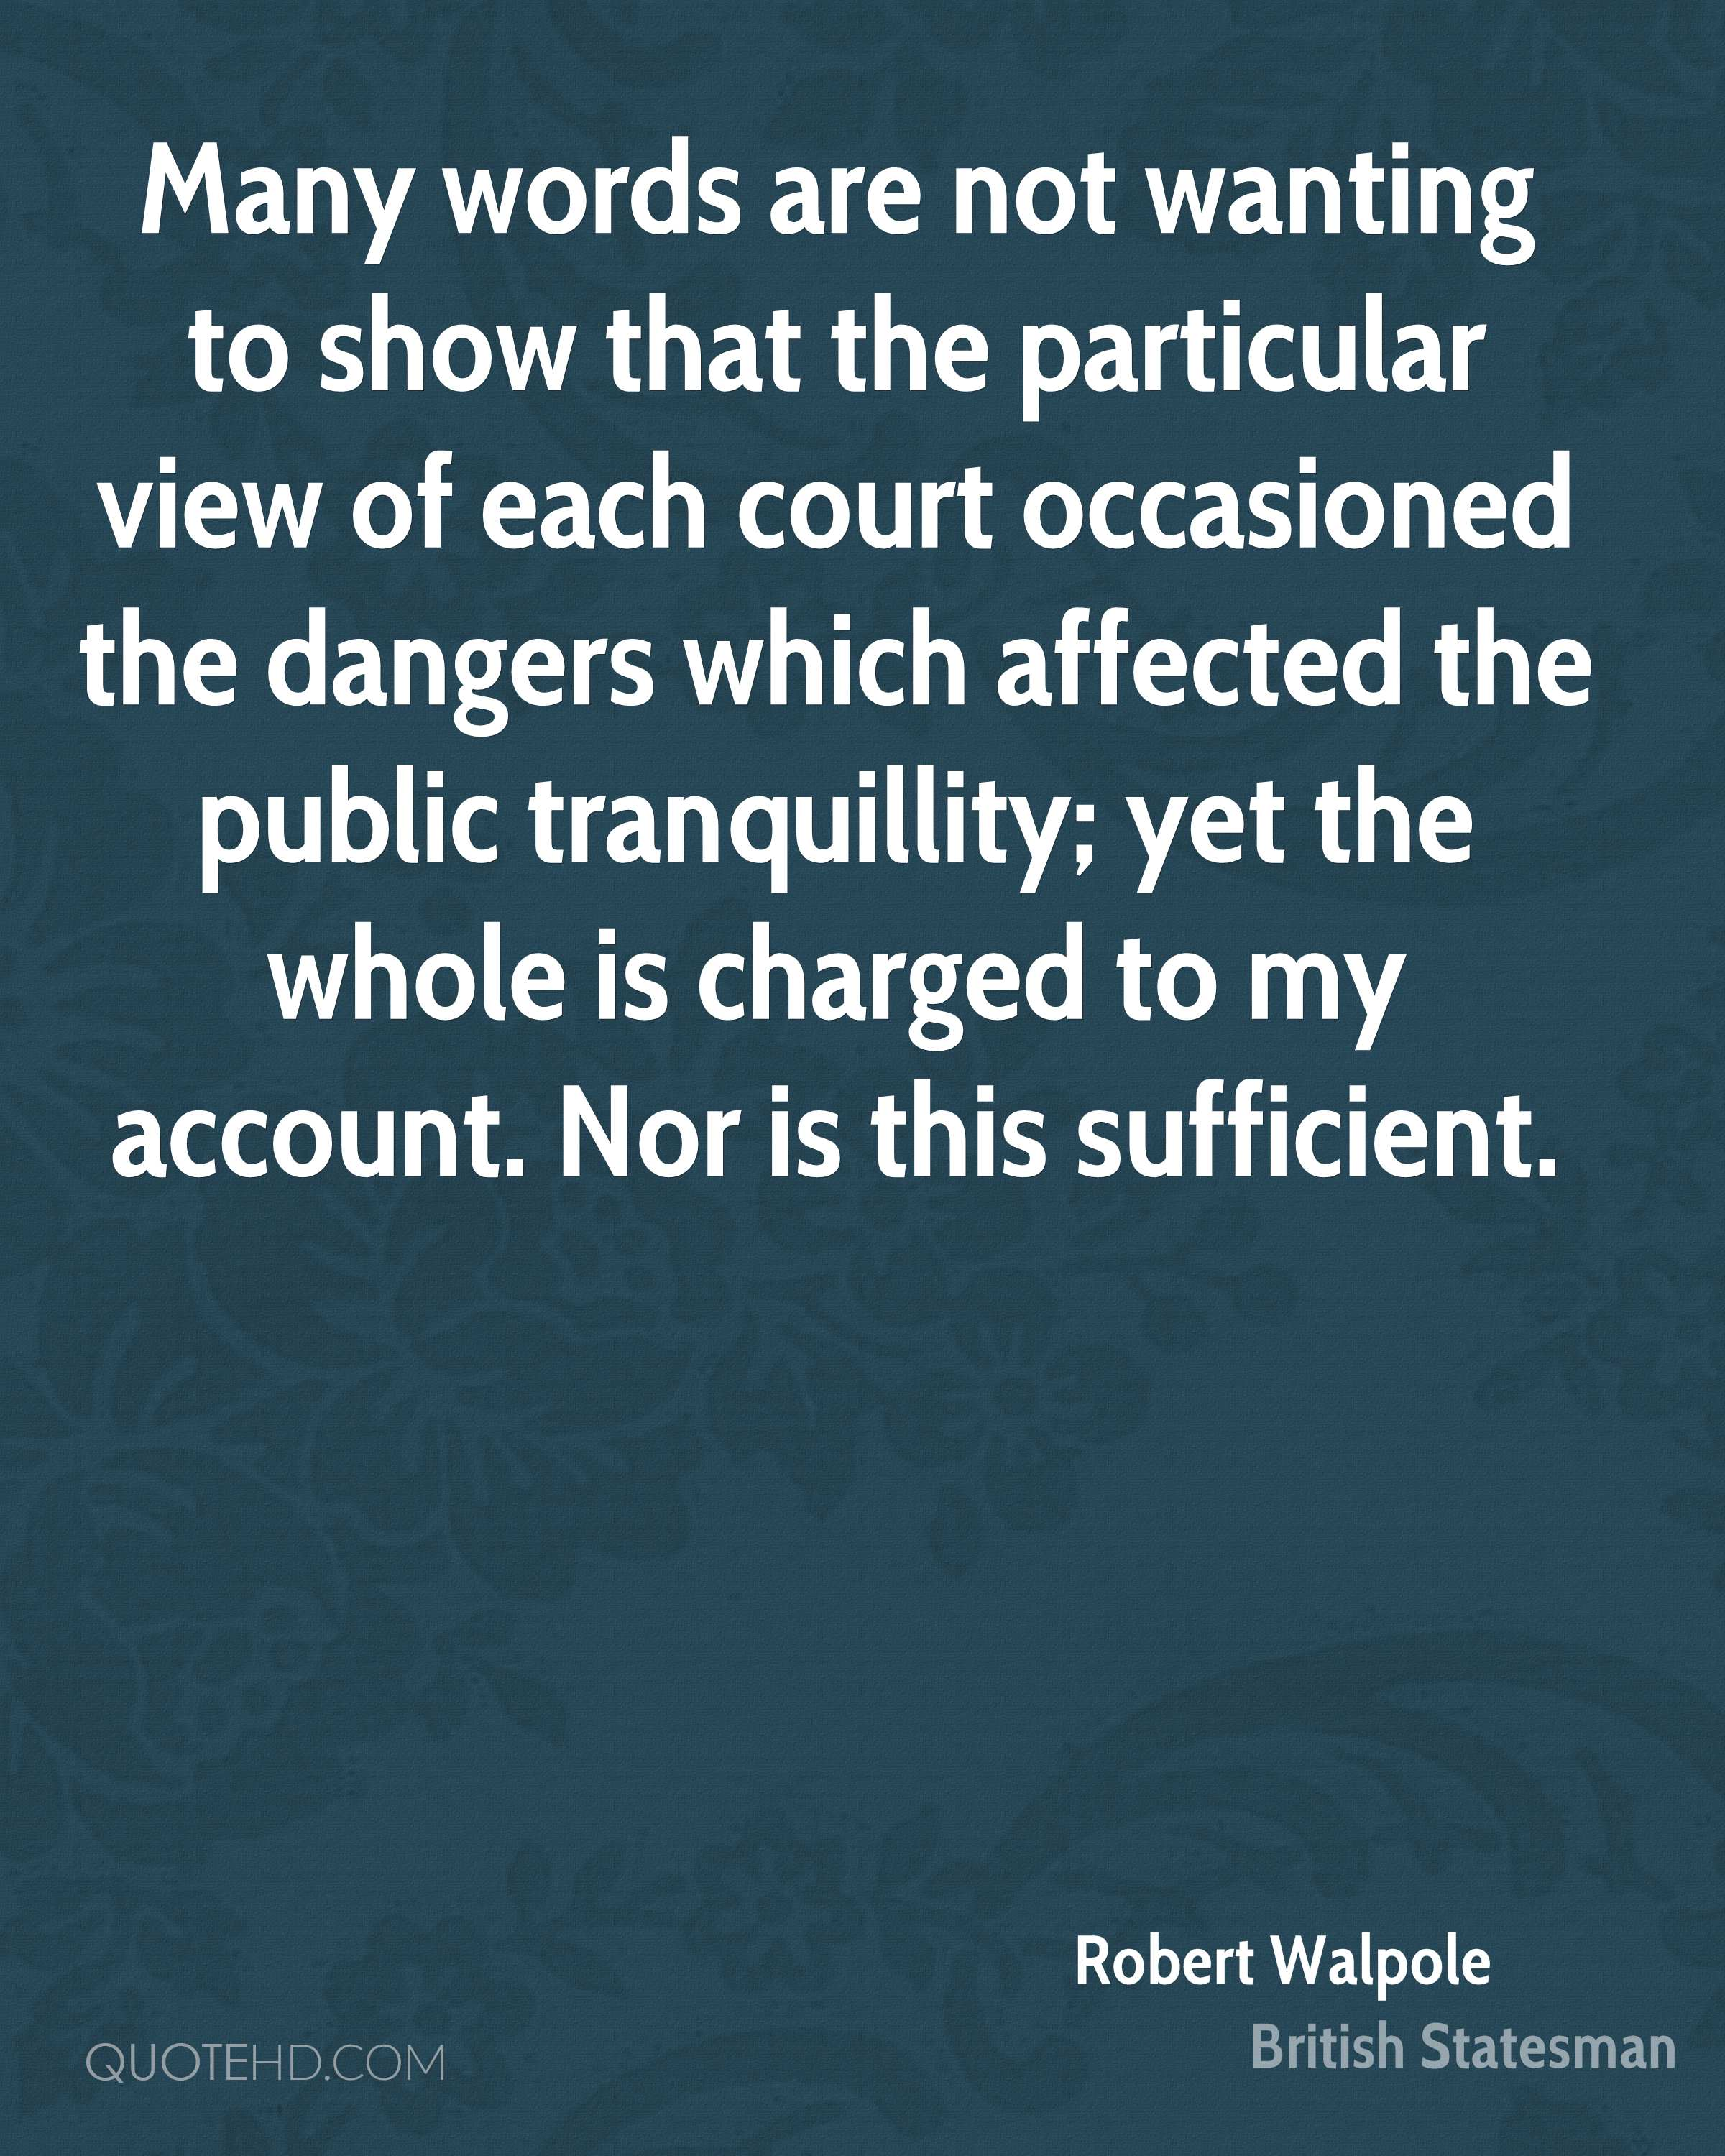 Many words are not wanting to show that the particular view of each court occasioned the dangers which affected the public tranquillity; yet the whole is charged to my account. Nor is this sufficient.